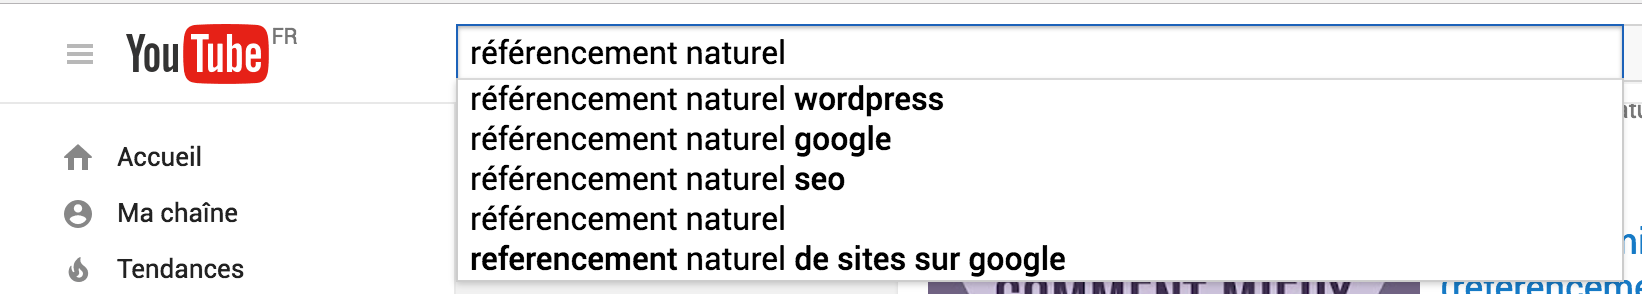 suggestions de recherche youtube